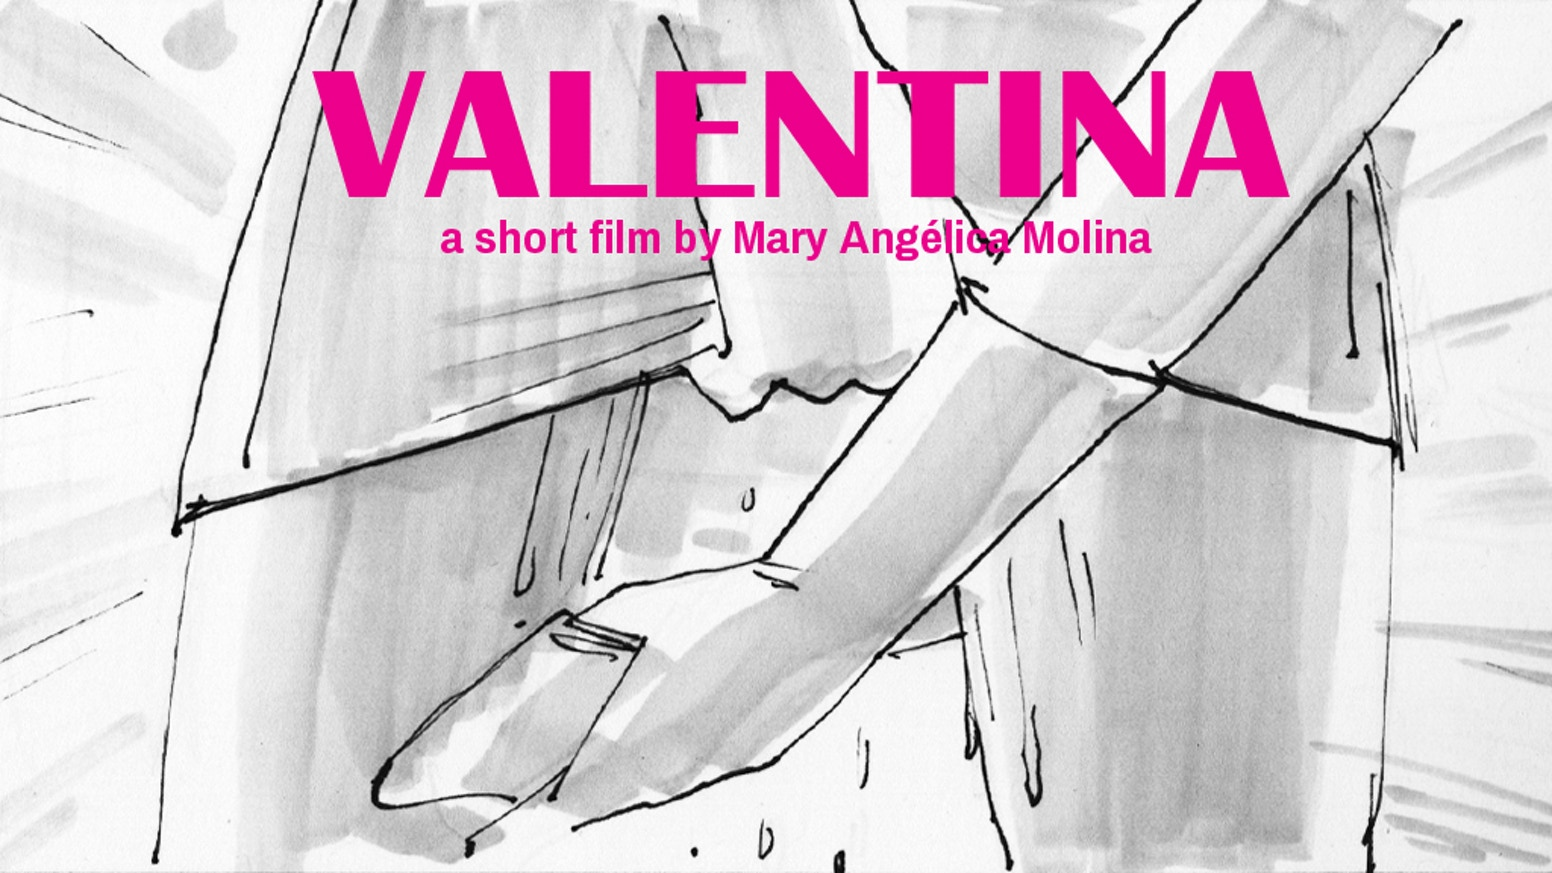 Valentina A Short Film About A Talking Vagina By Mary Angelica